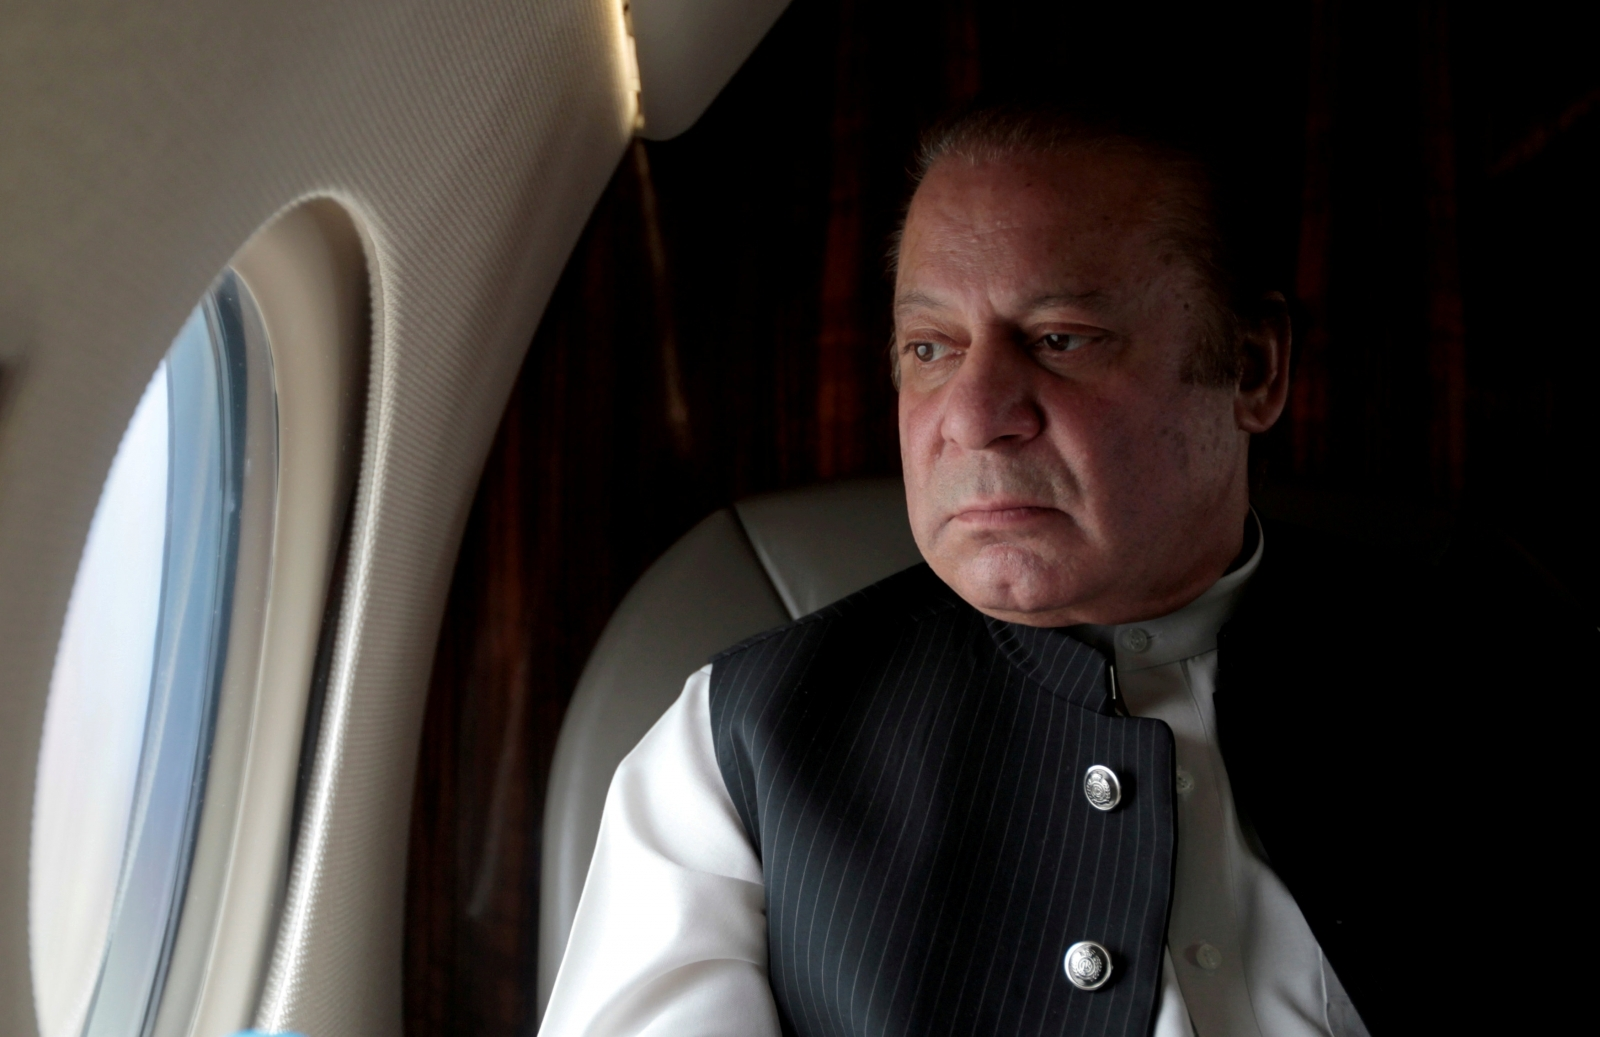 Pakistan PM Nawaz Sharif resigns after Supreme Court ousts him over Panama Papers scandal